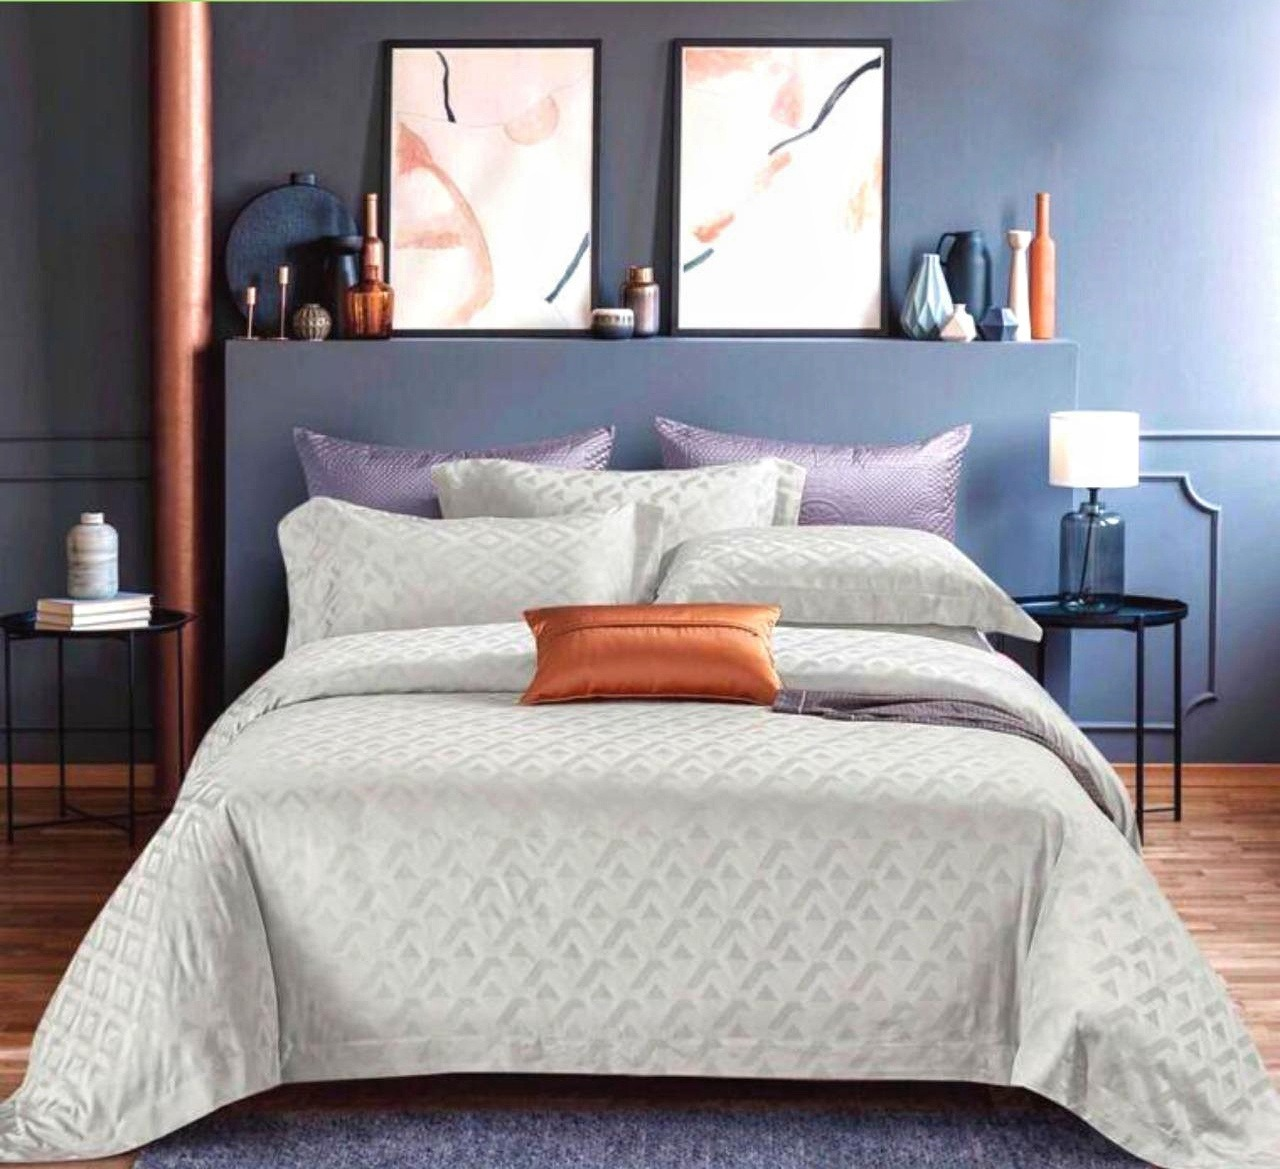 Bianco - Premium Tencel Bedding Set